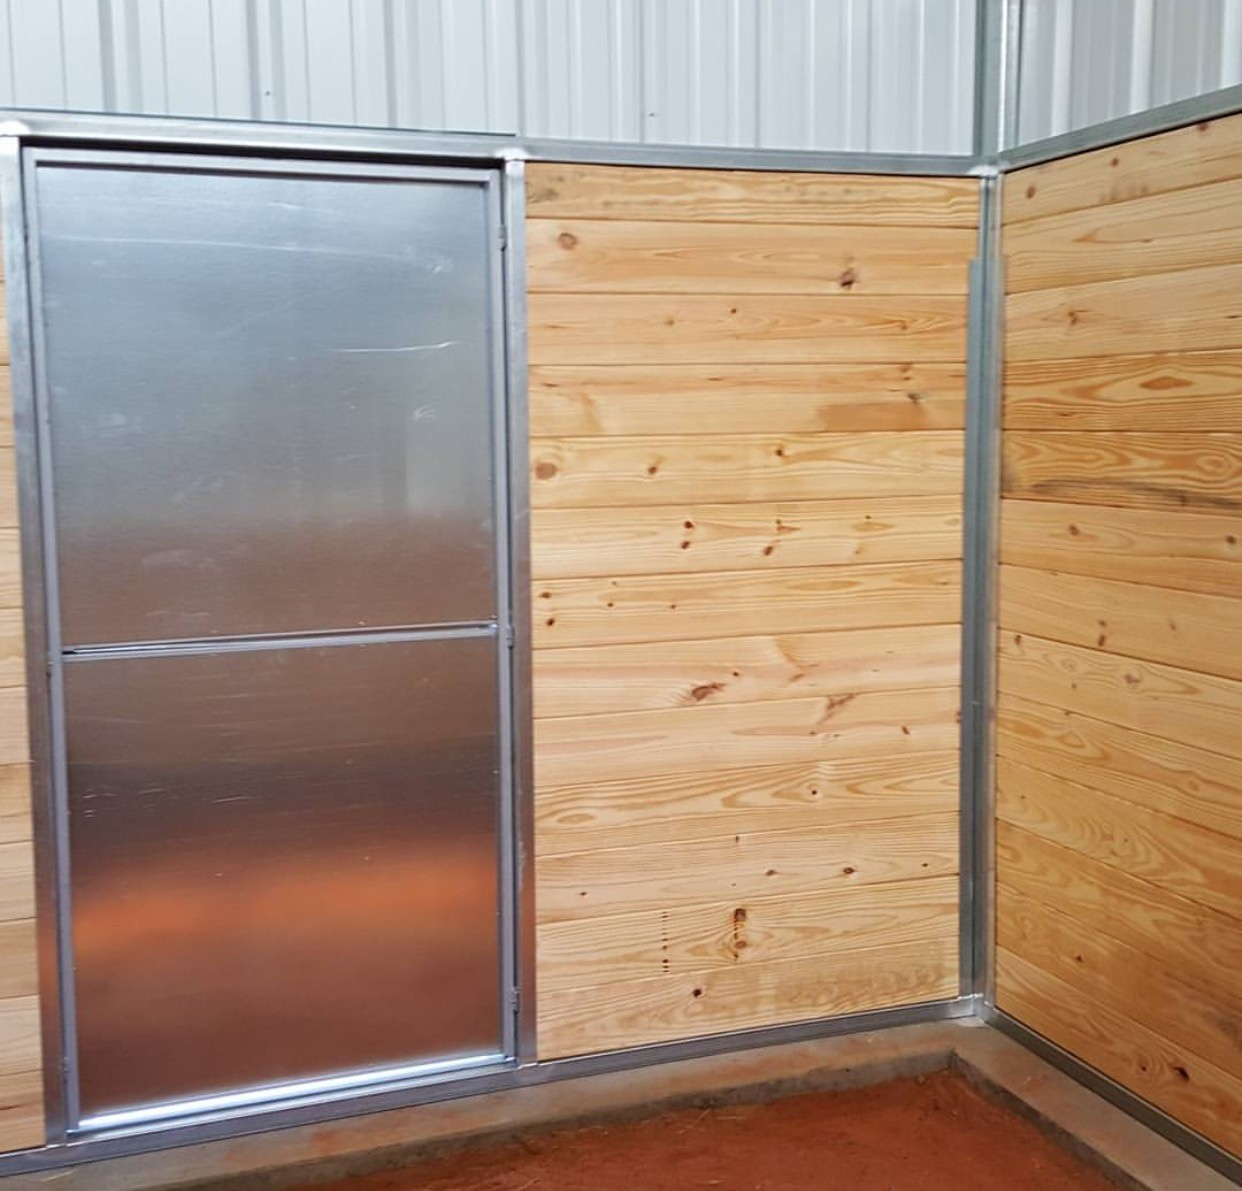 Dutch Door (from inside the stall)